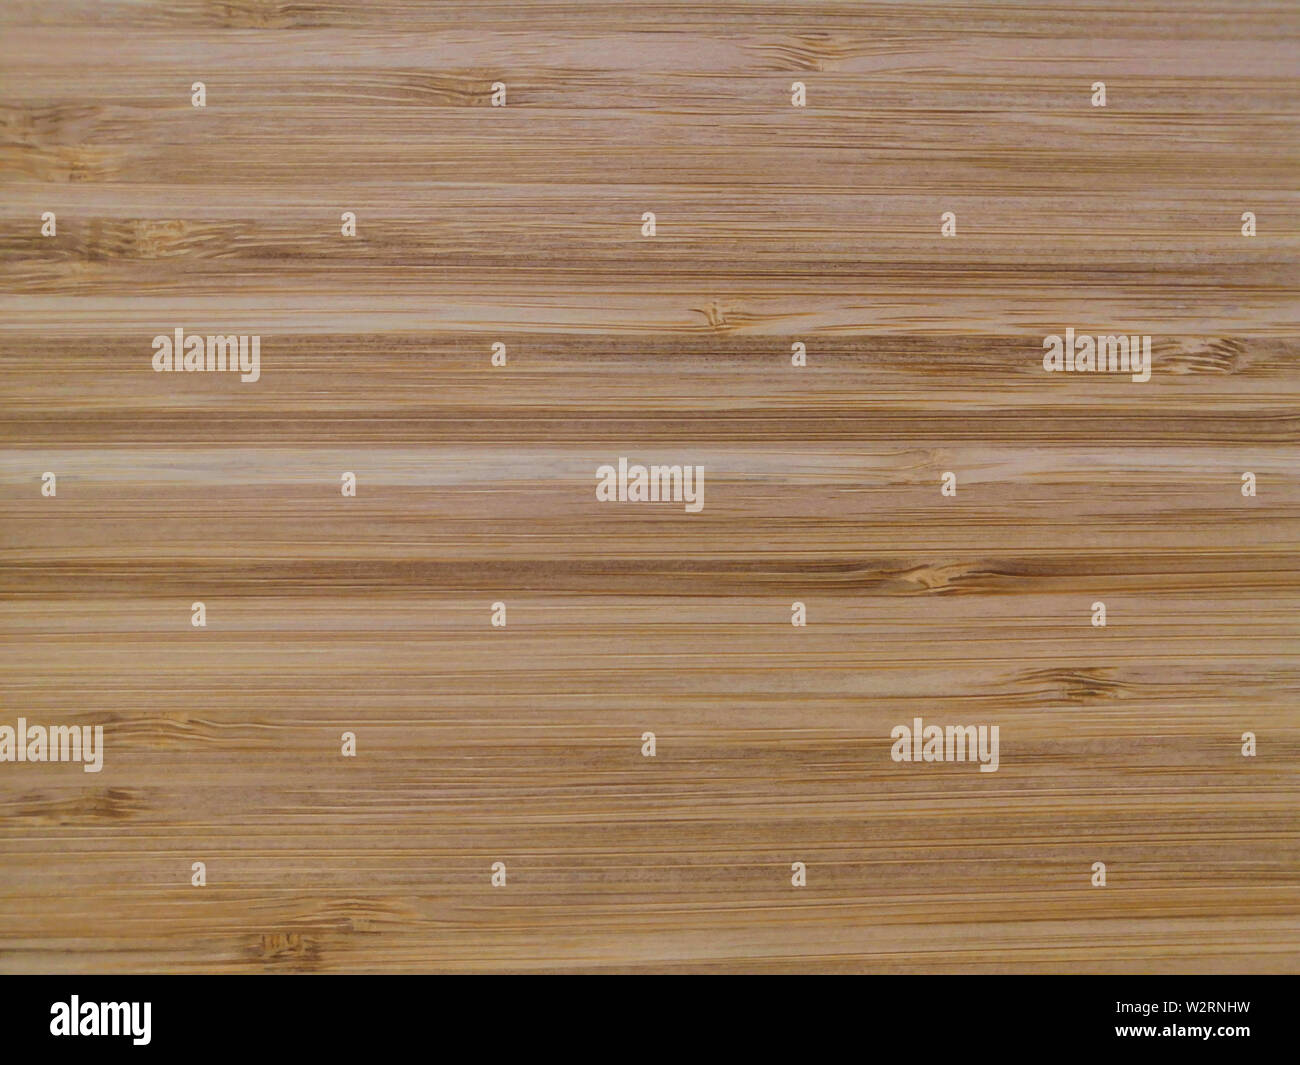 Bamboo Cutting Board Texture Wooden Background. - Stock Image